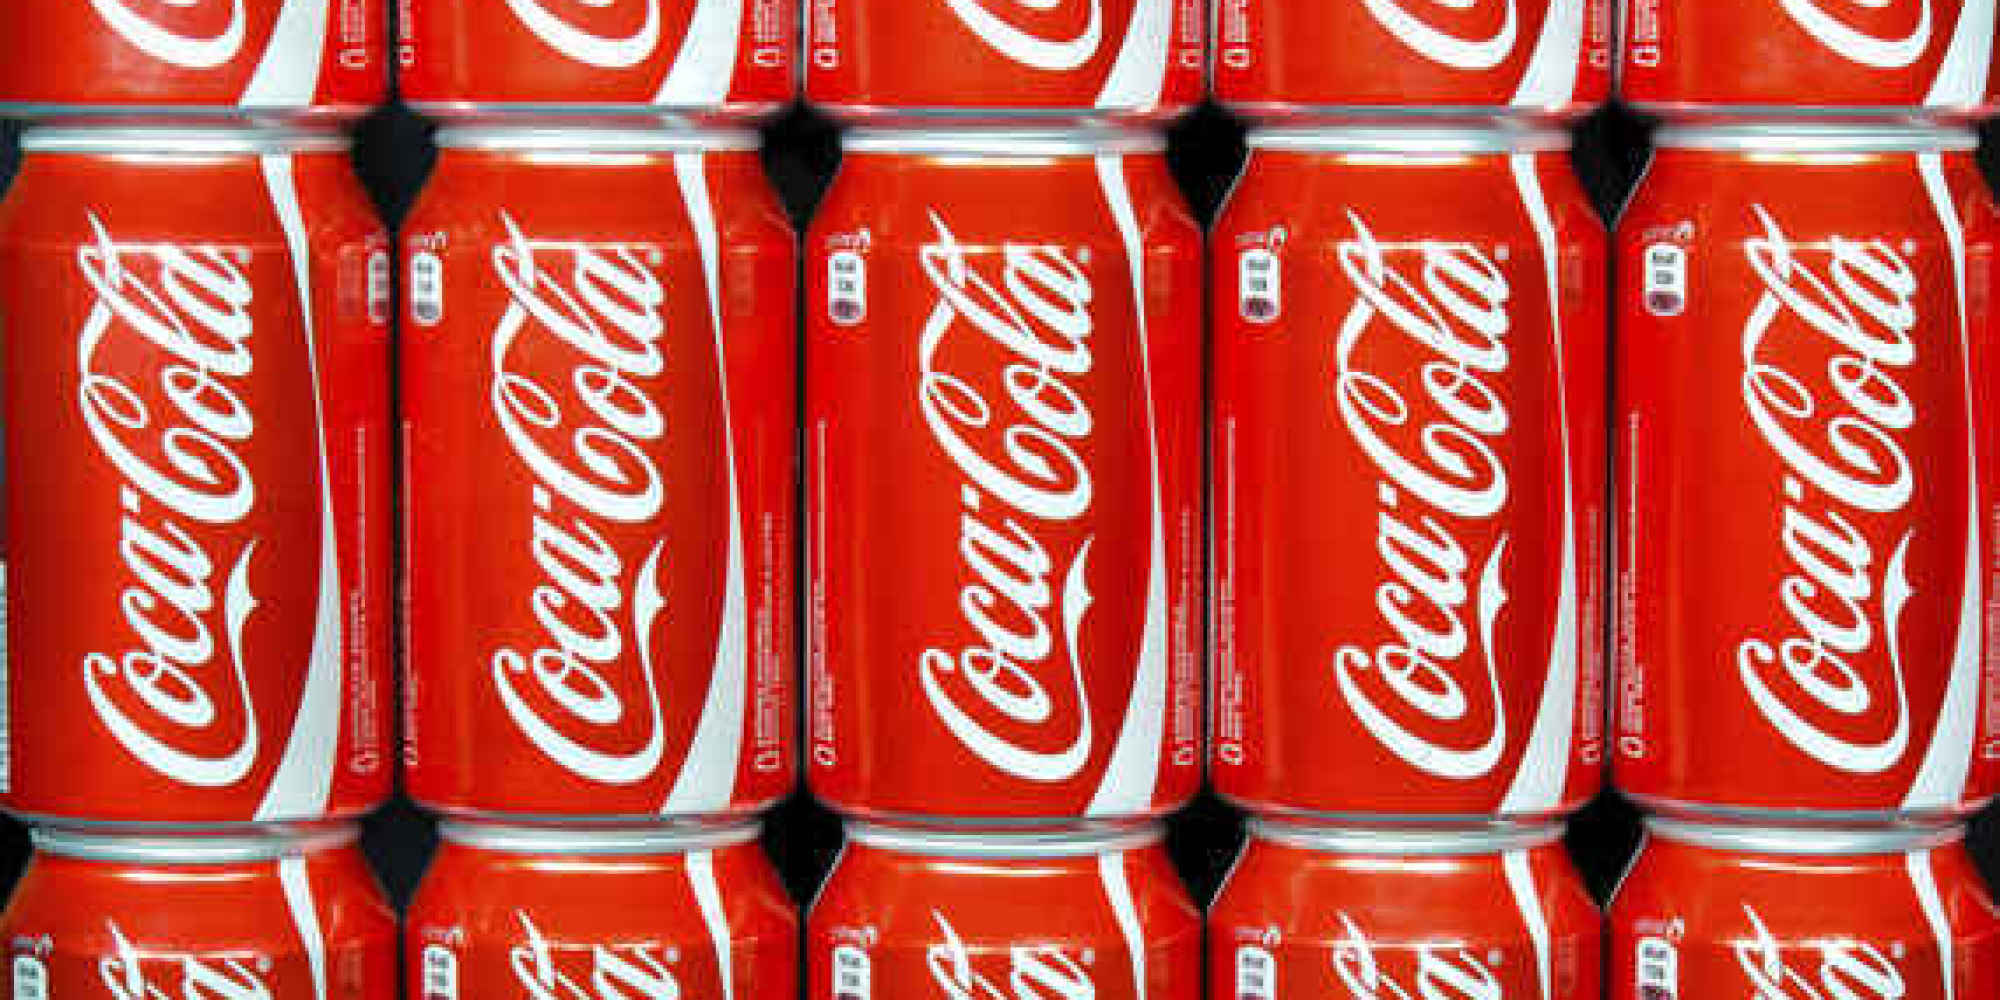 12 things you can do with coca cola besides drink it